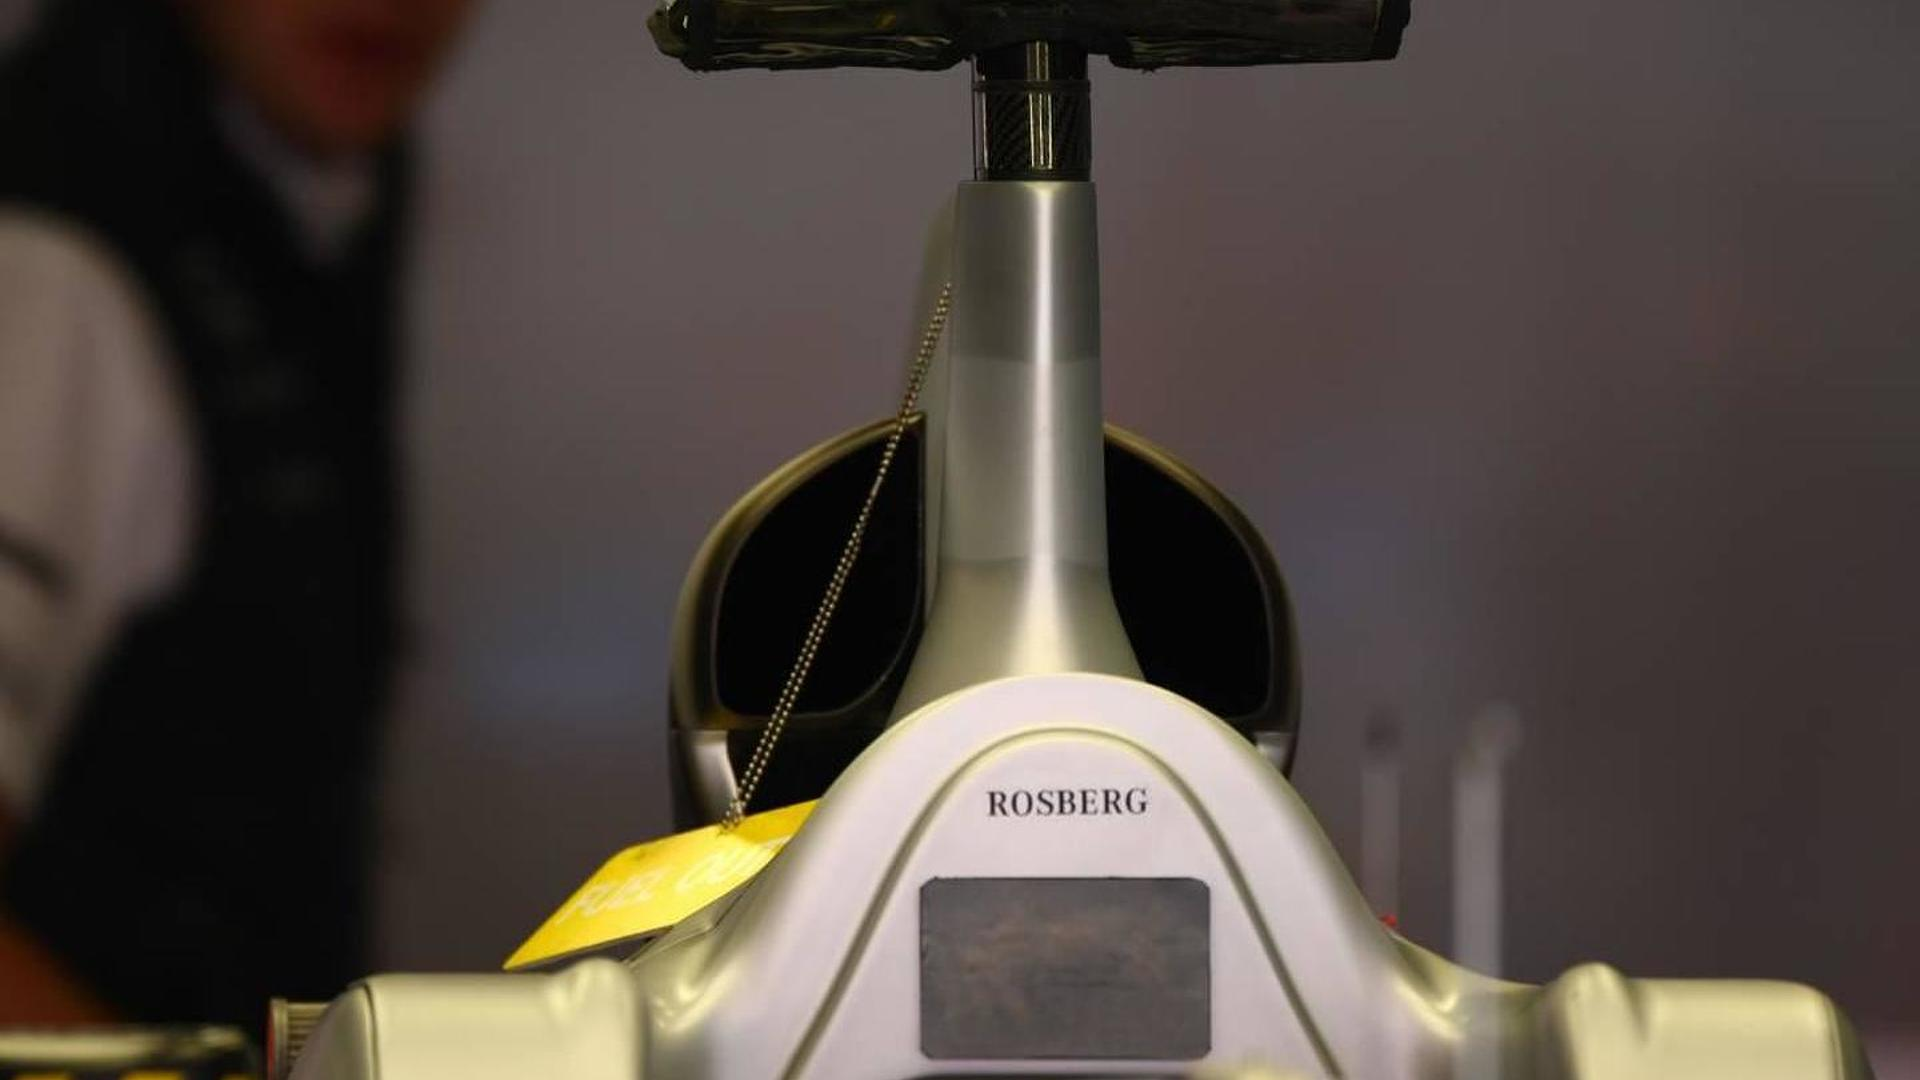 No airbox on Mercedes' revised 2010 car